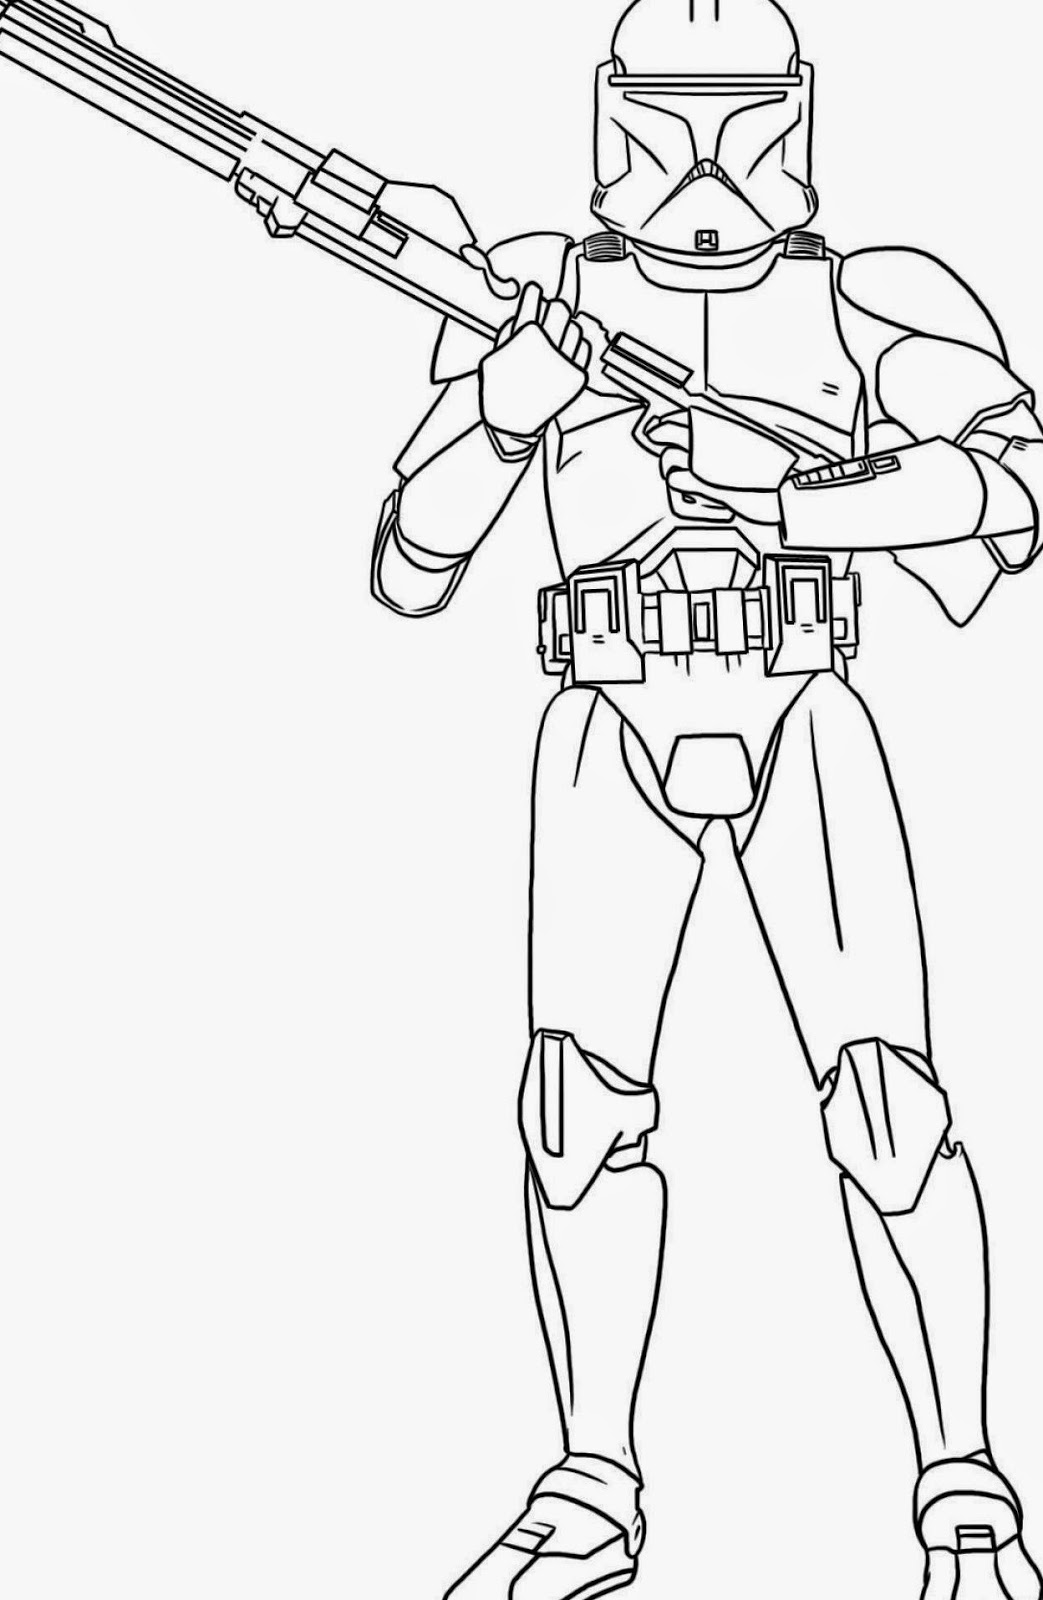 star wars pictures to print and color star wars line drawings free google search star wars wars star print and pictures color to